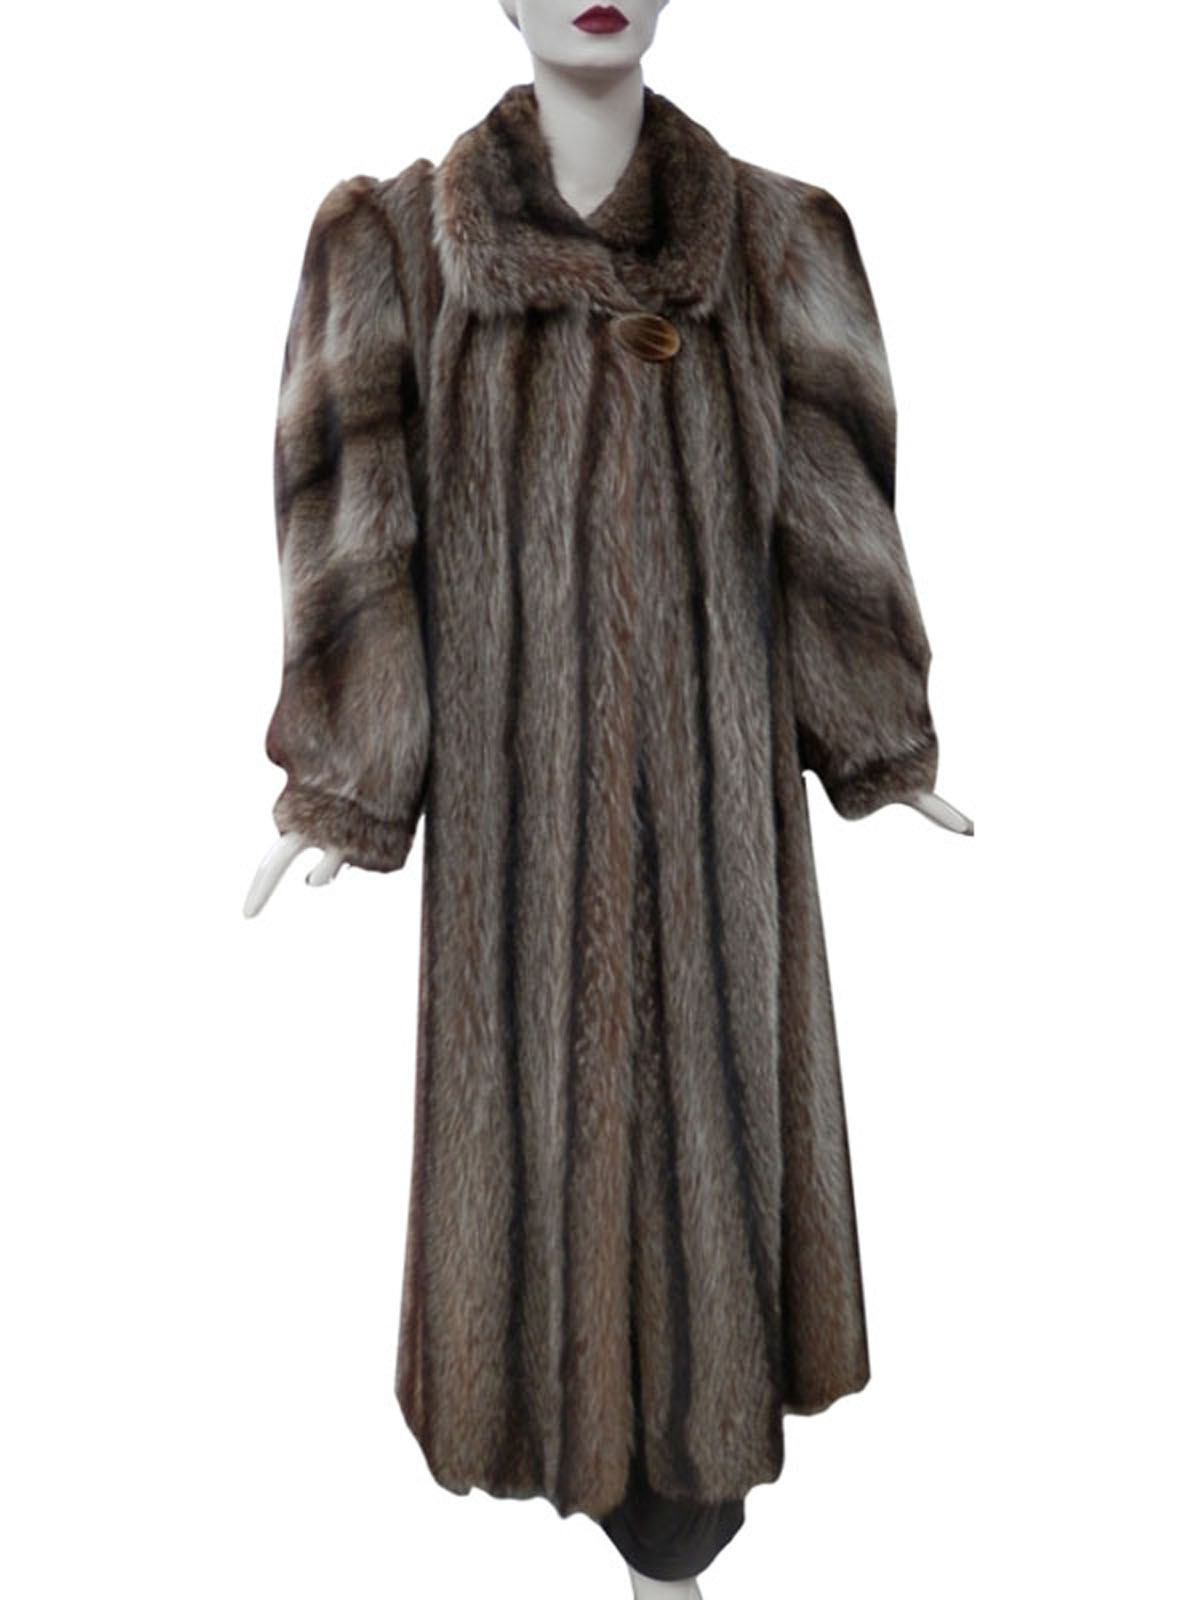 Golden Raccoon Coat with Diagonal Sleeve Design